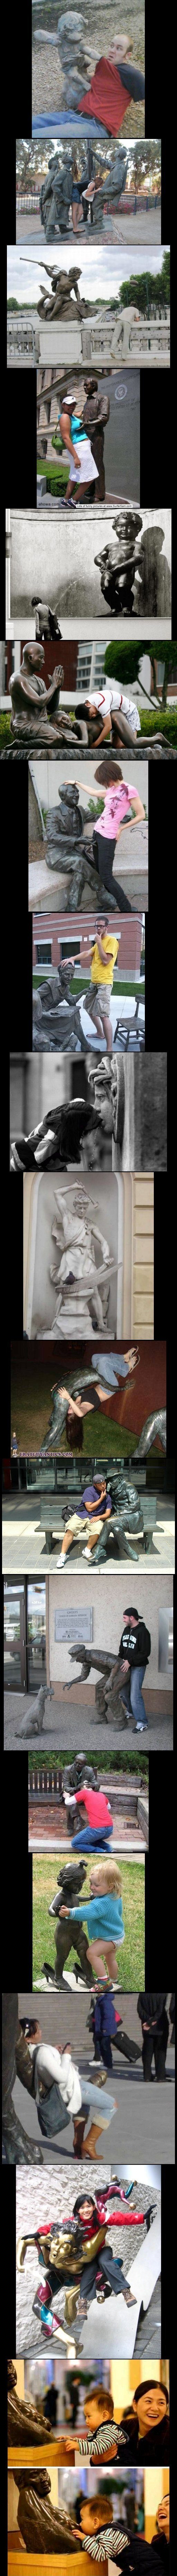 funwithstatues0 - fun with statues